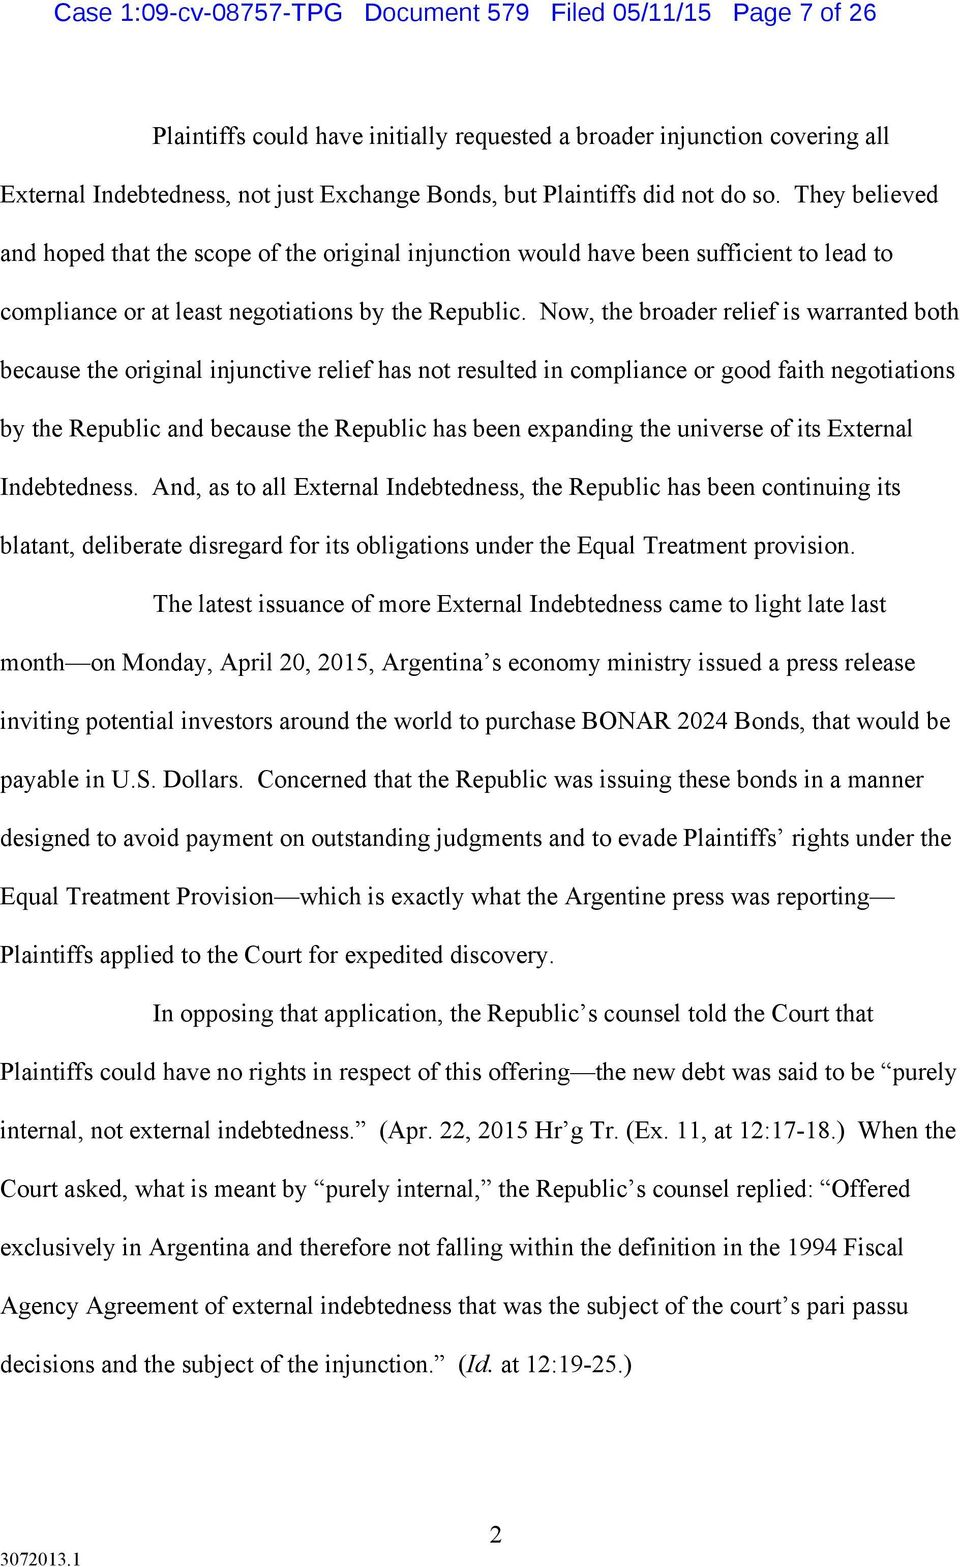 Now, the broader relief is warranted both because the original injunctive relief has not resulted in compliance or good faith negotiations by the Republic and because the Republic has been expanding